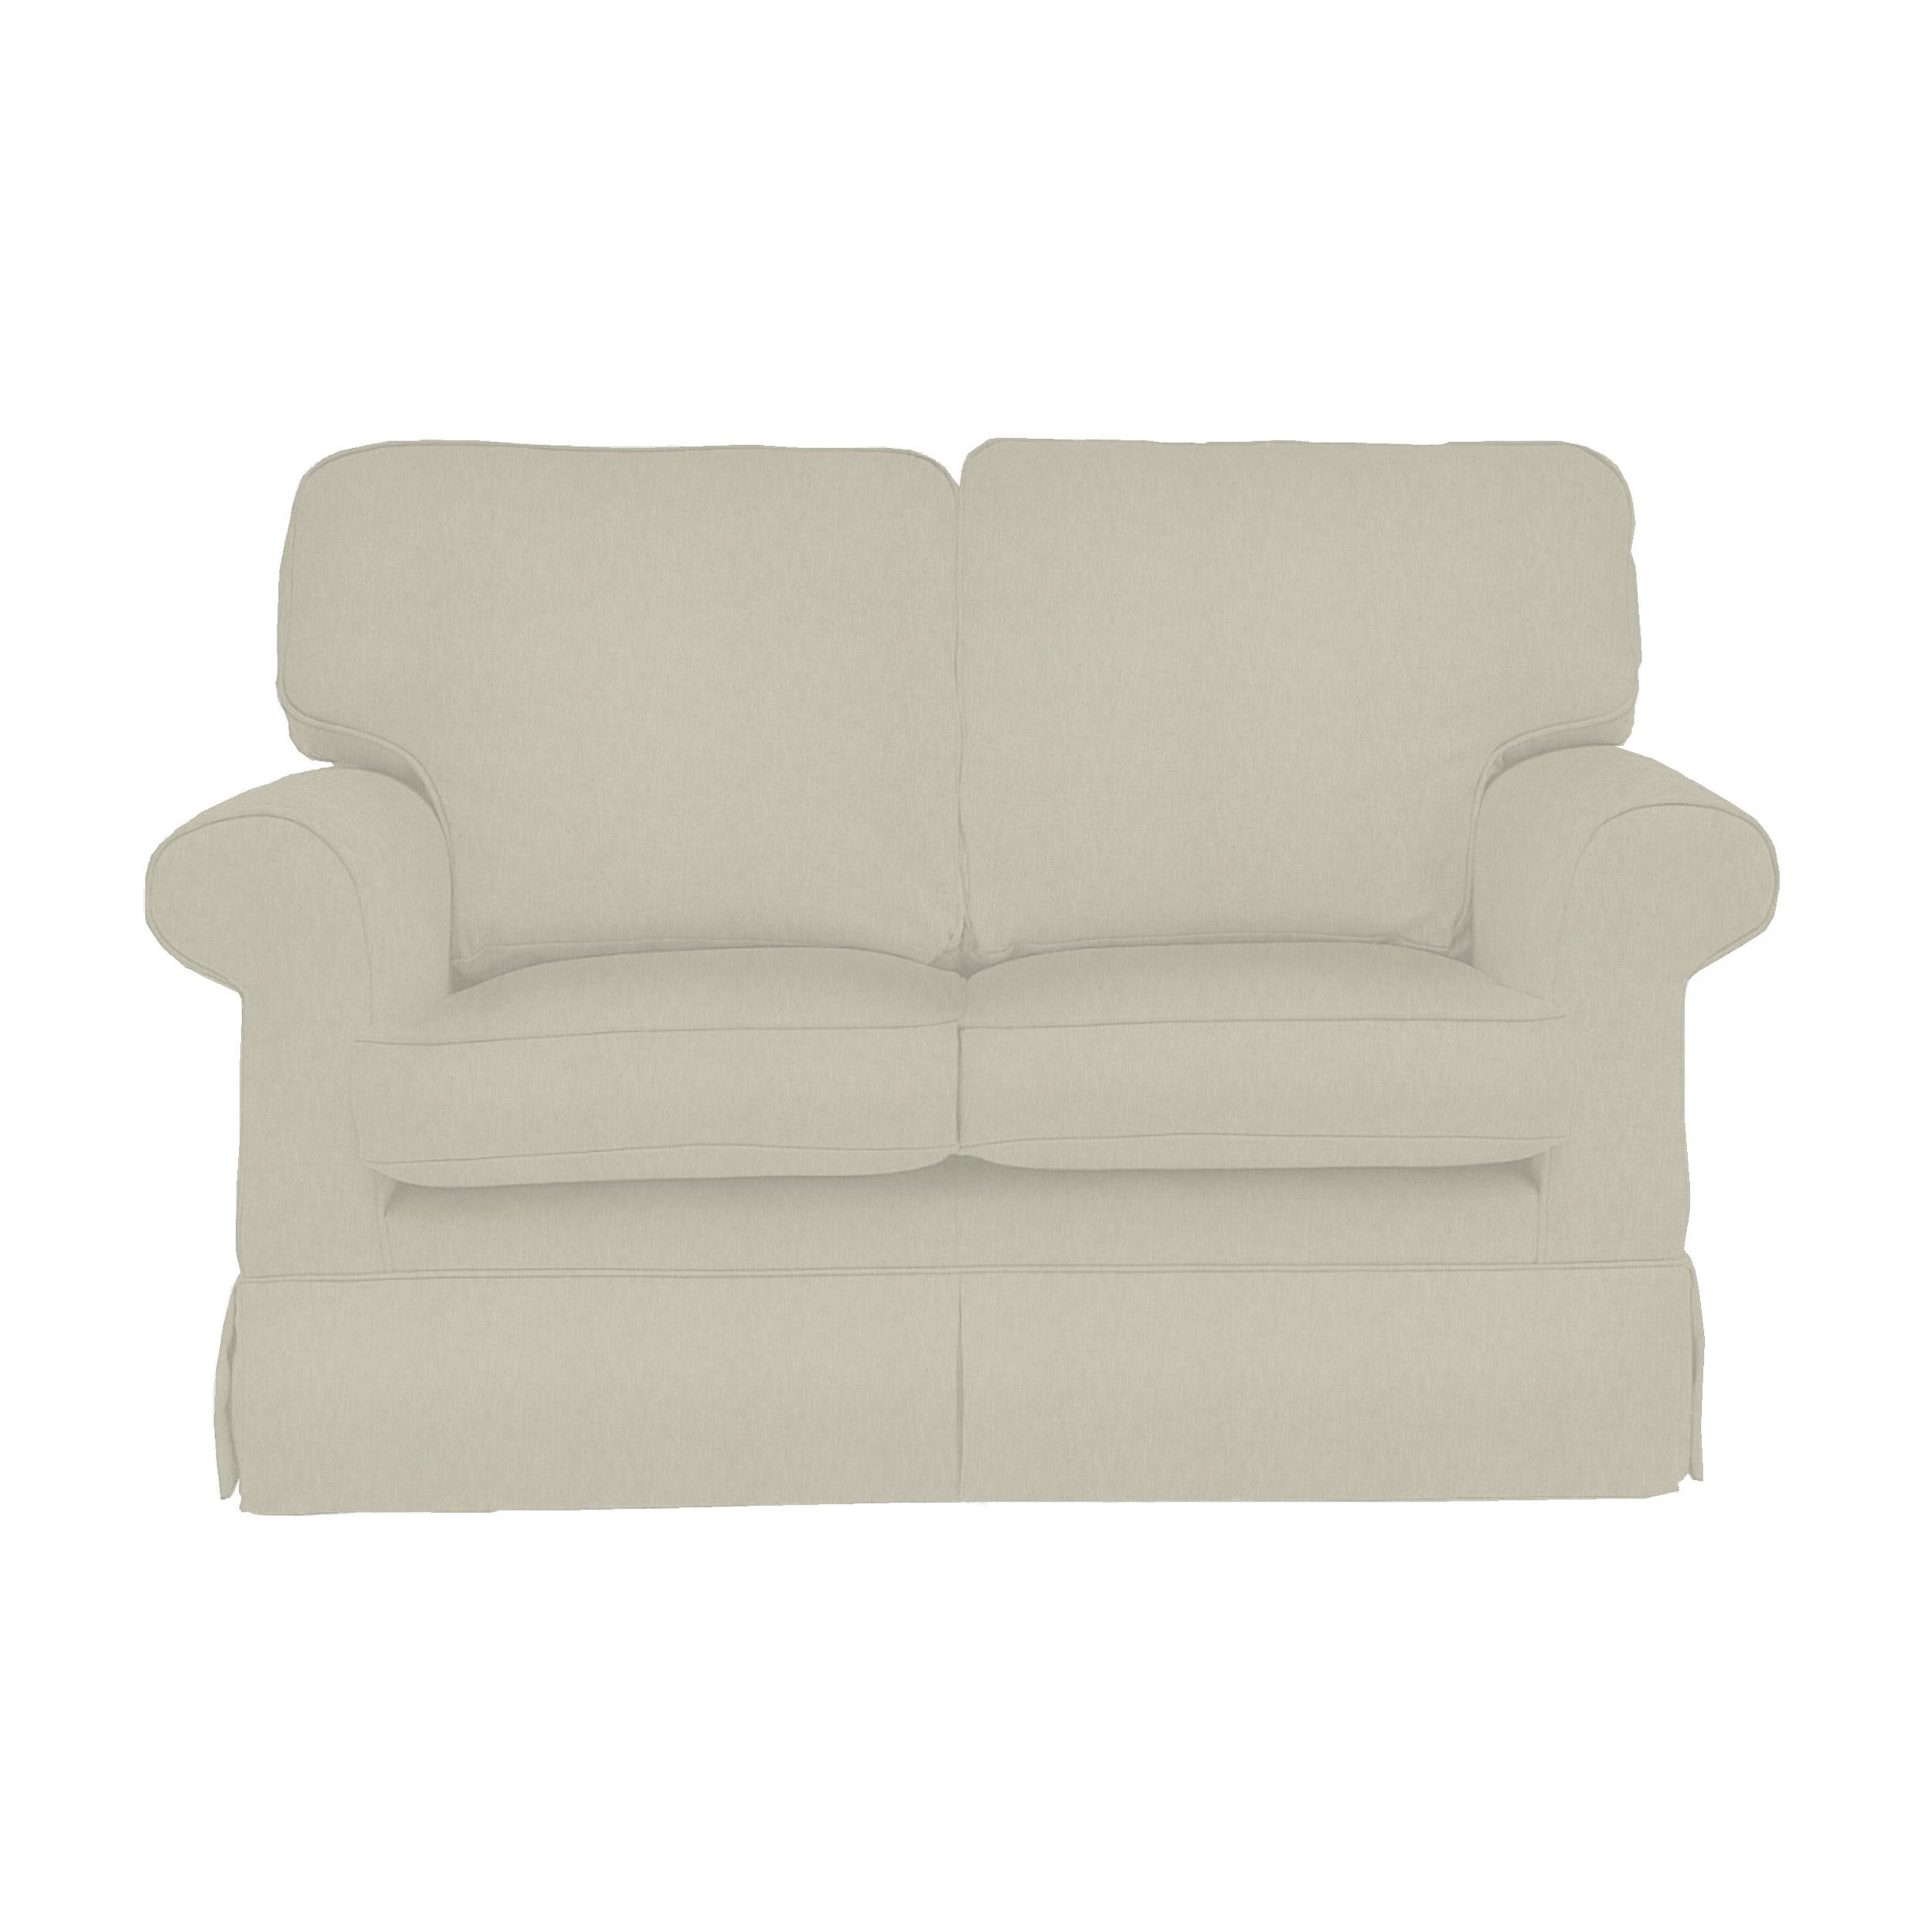 padstow 2 seater sofa laura ashley jennifer convertible beds loose covers small mysmallspace